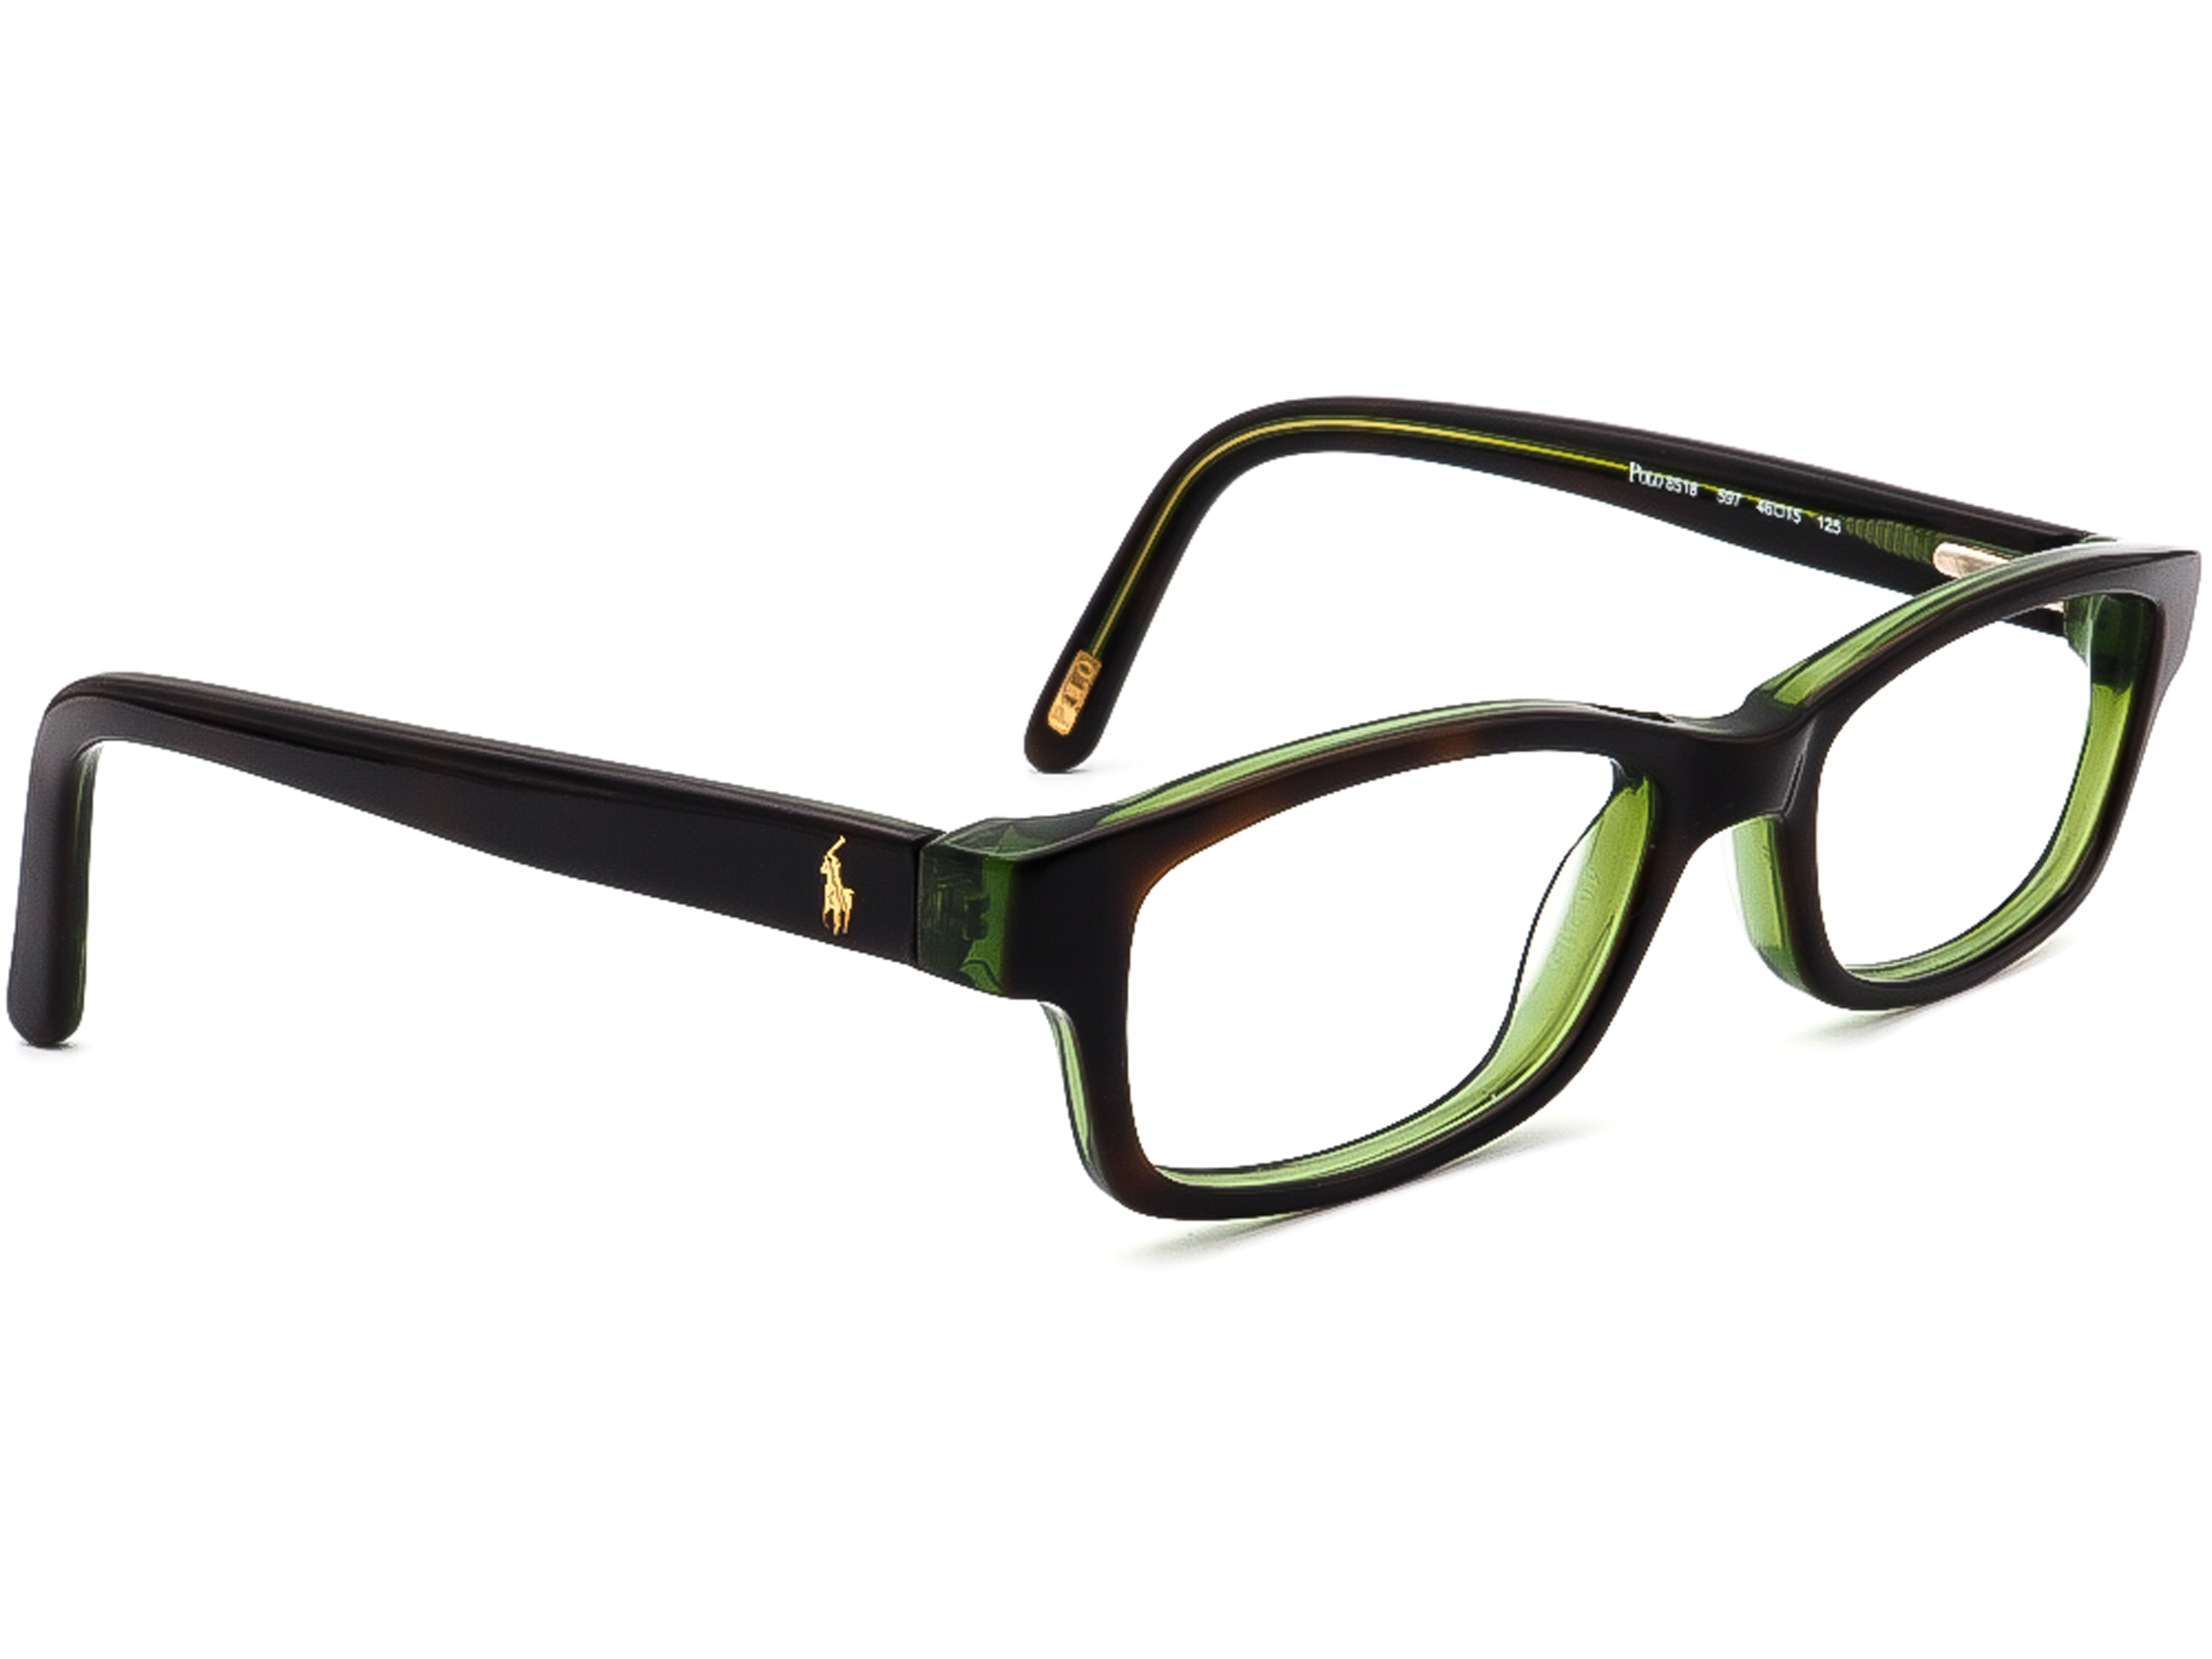 Ralph Lauren Polo 8518 597 Eyeglasses